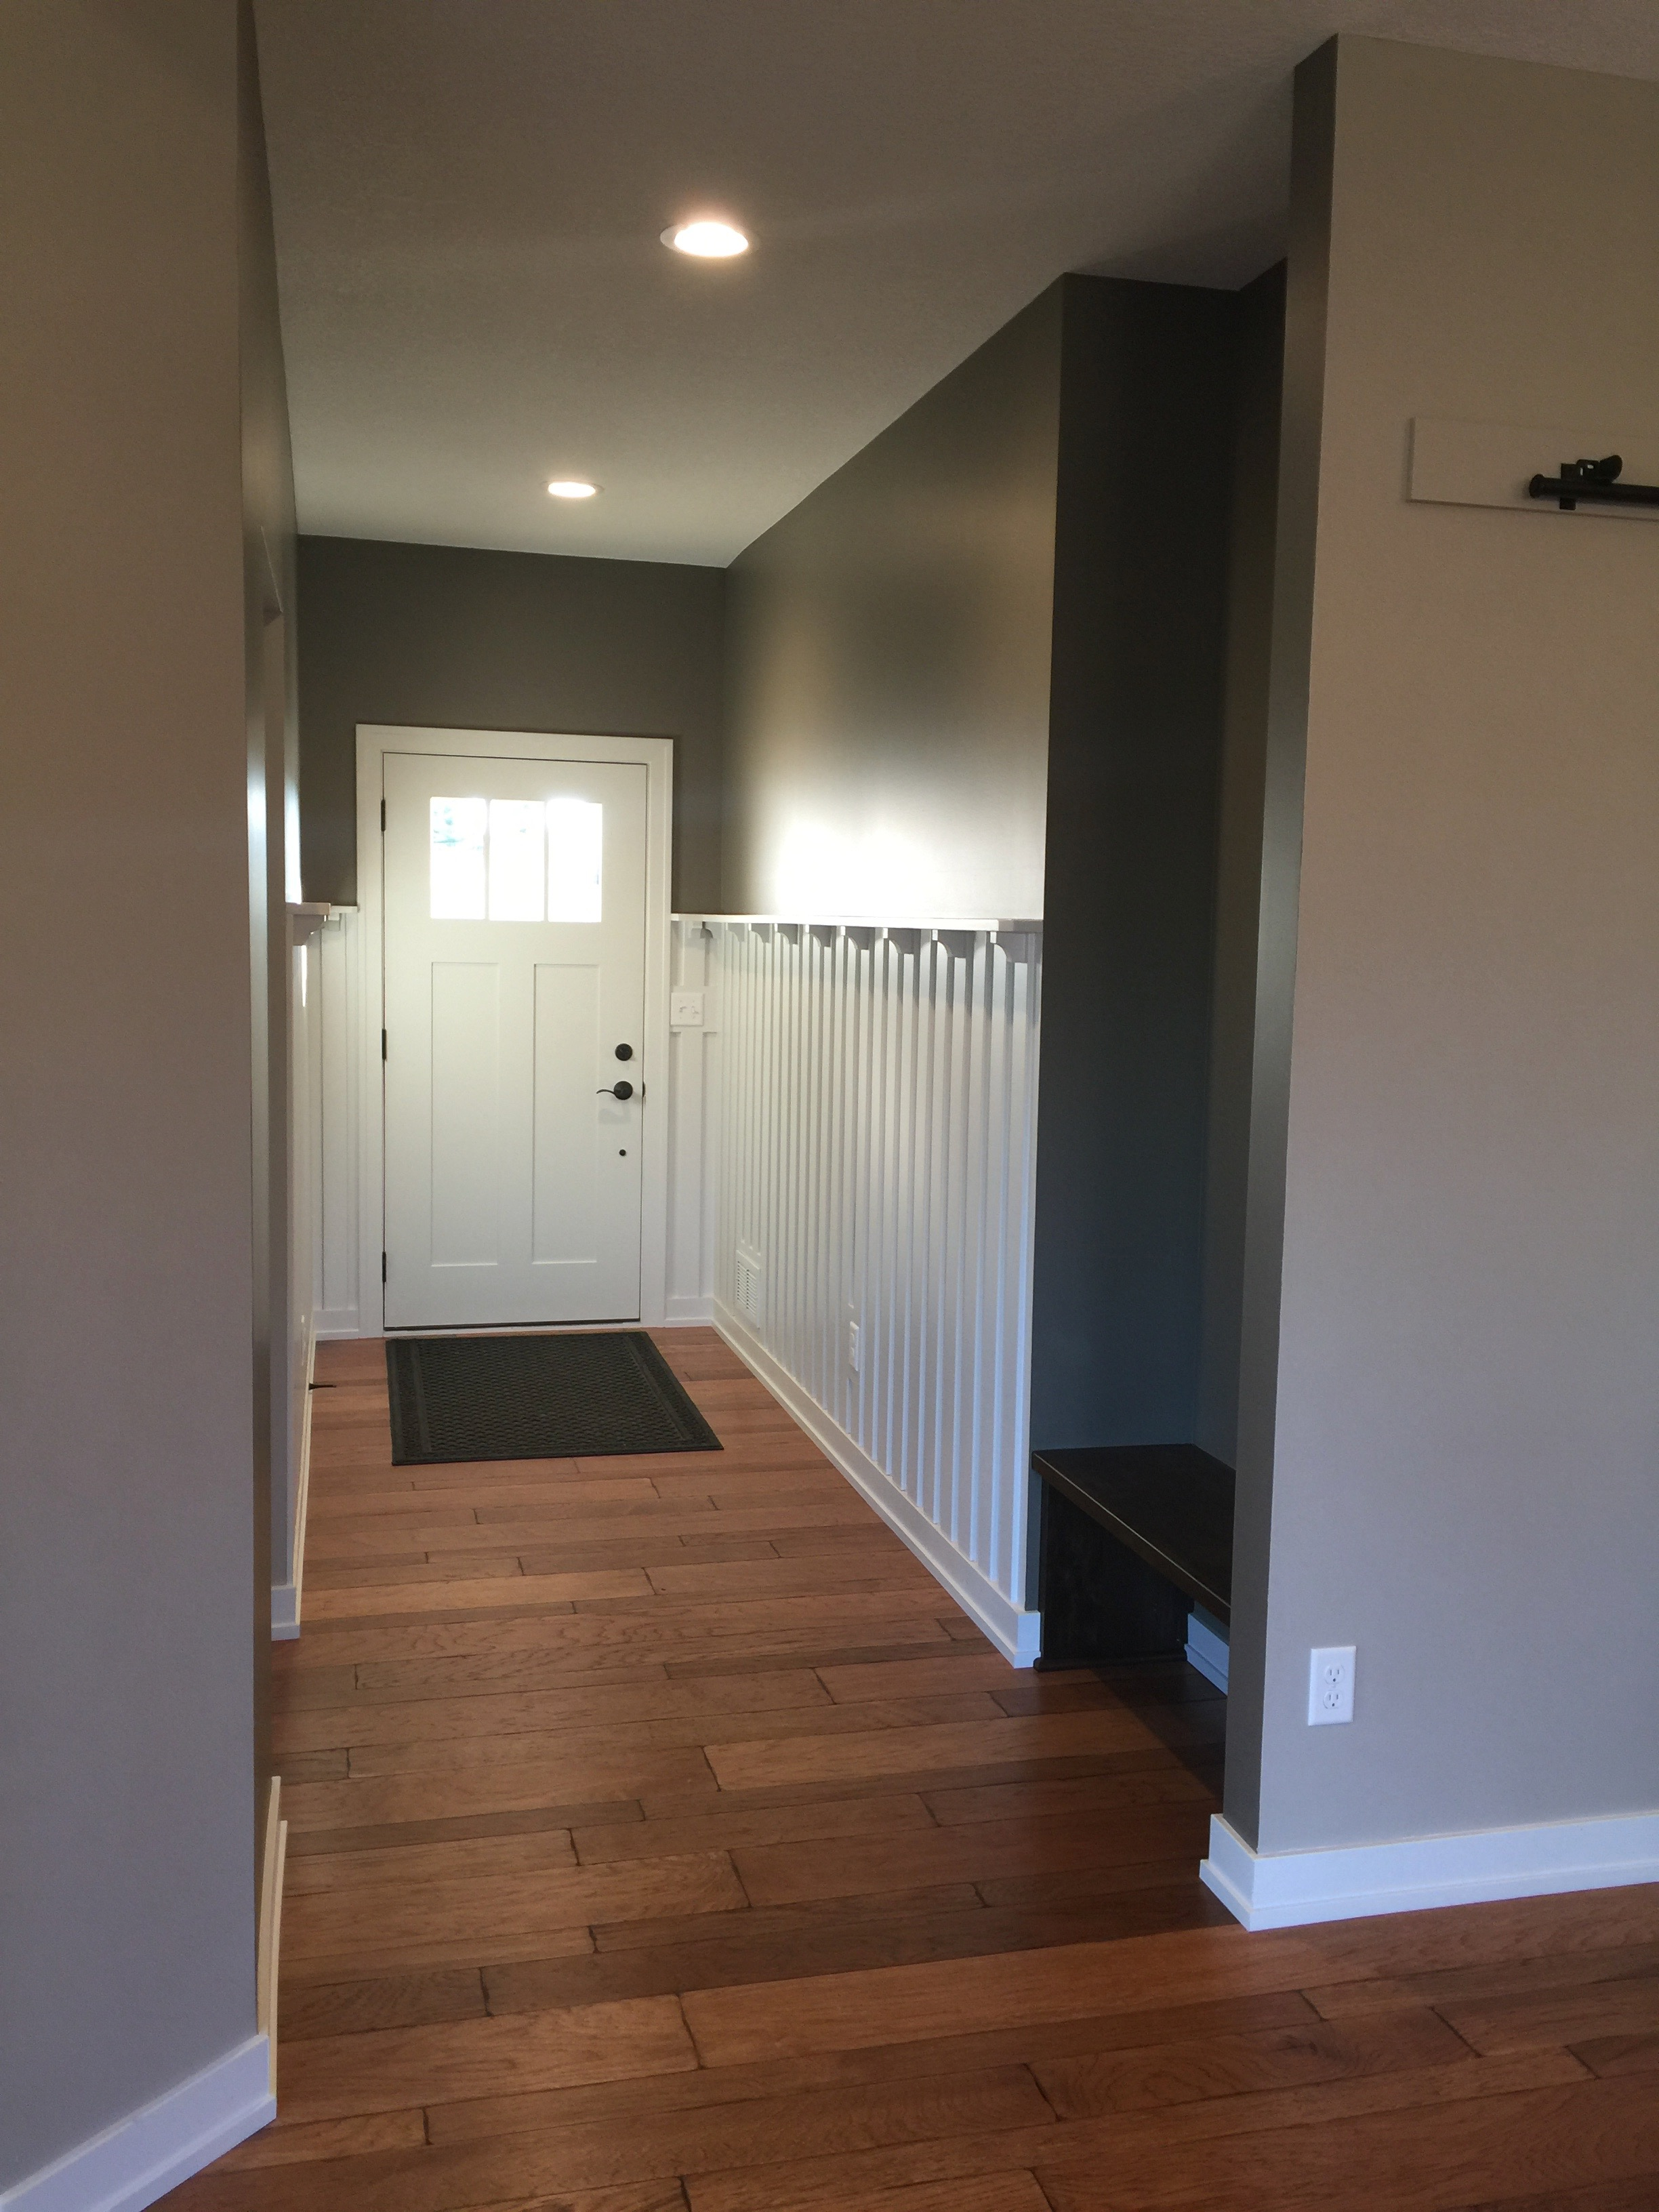 New construction   General Contractor: Hammer Homes  Design: Dwell Local